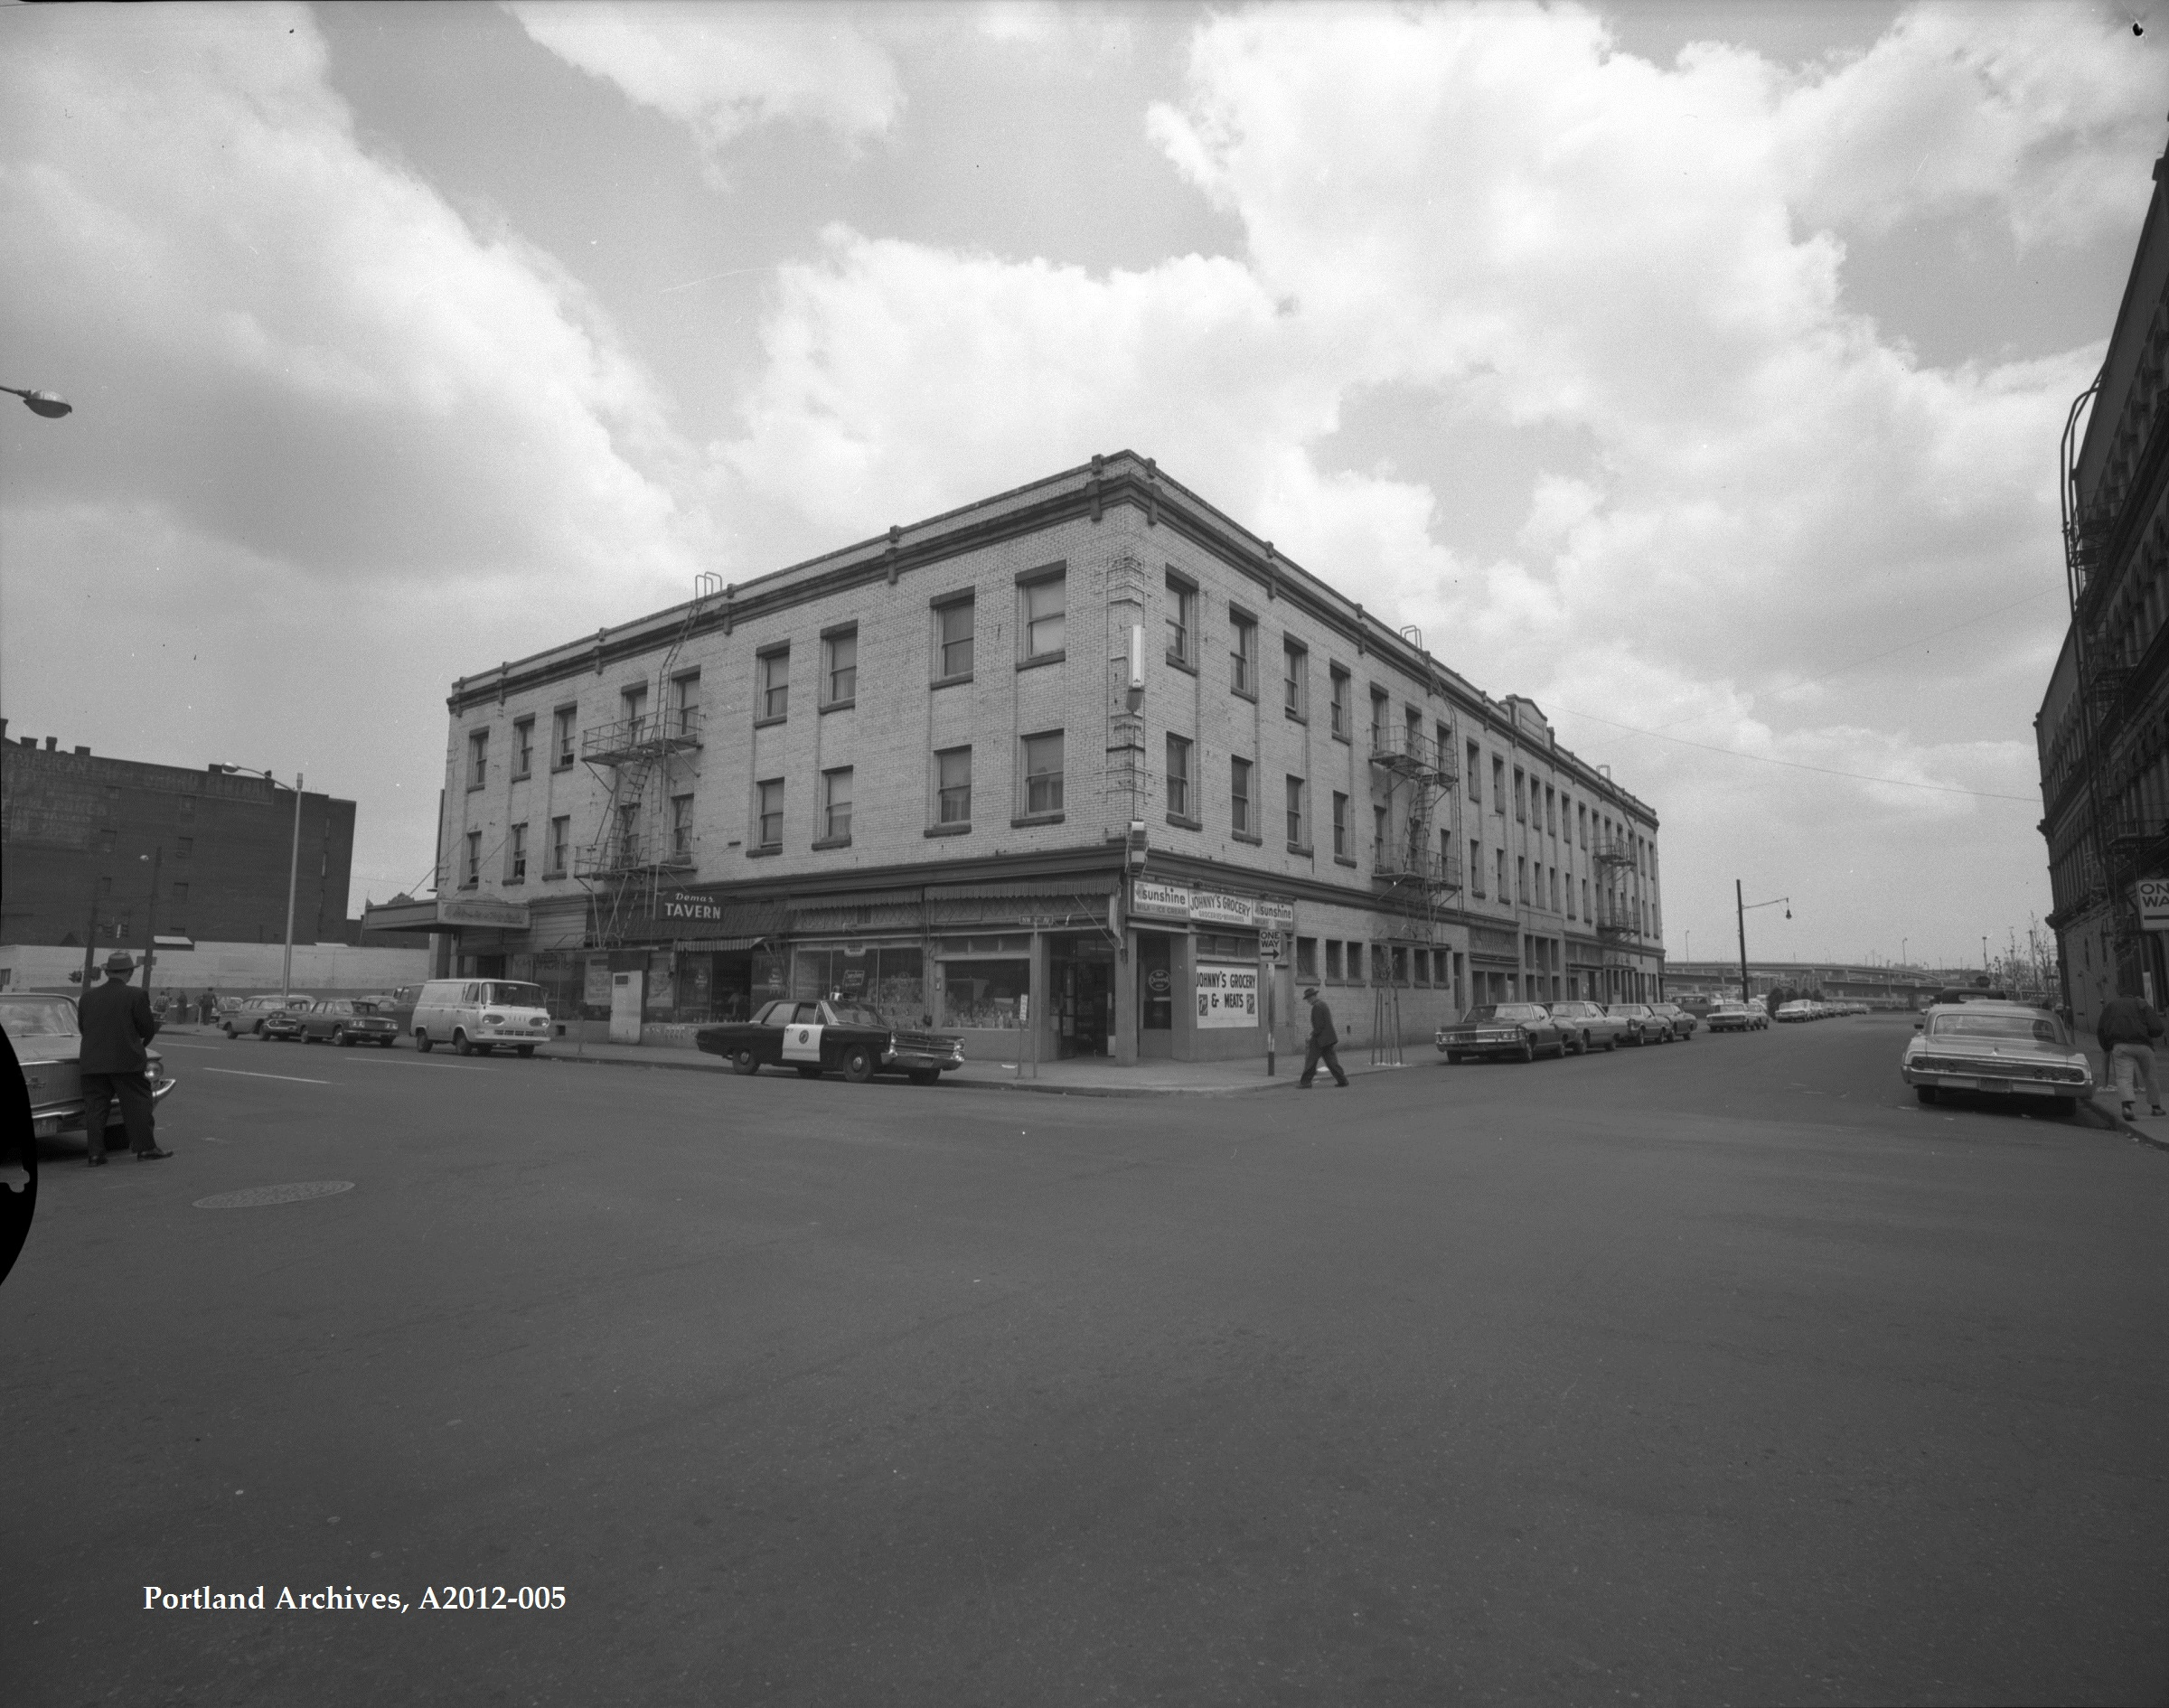 City of Portland Archives, Oregon, NW 3rd Avenue and NW Davis Street, A2012-005